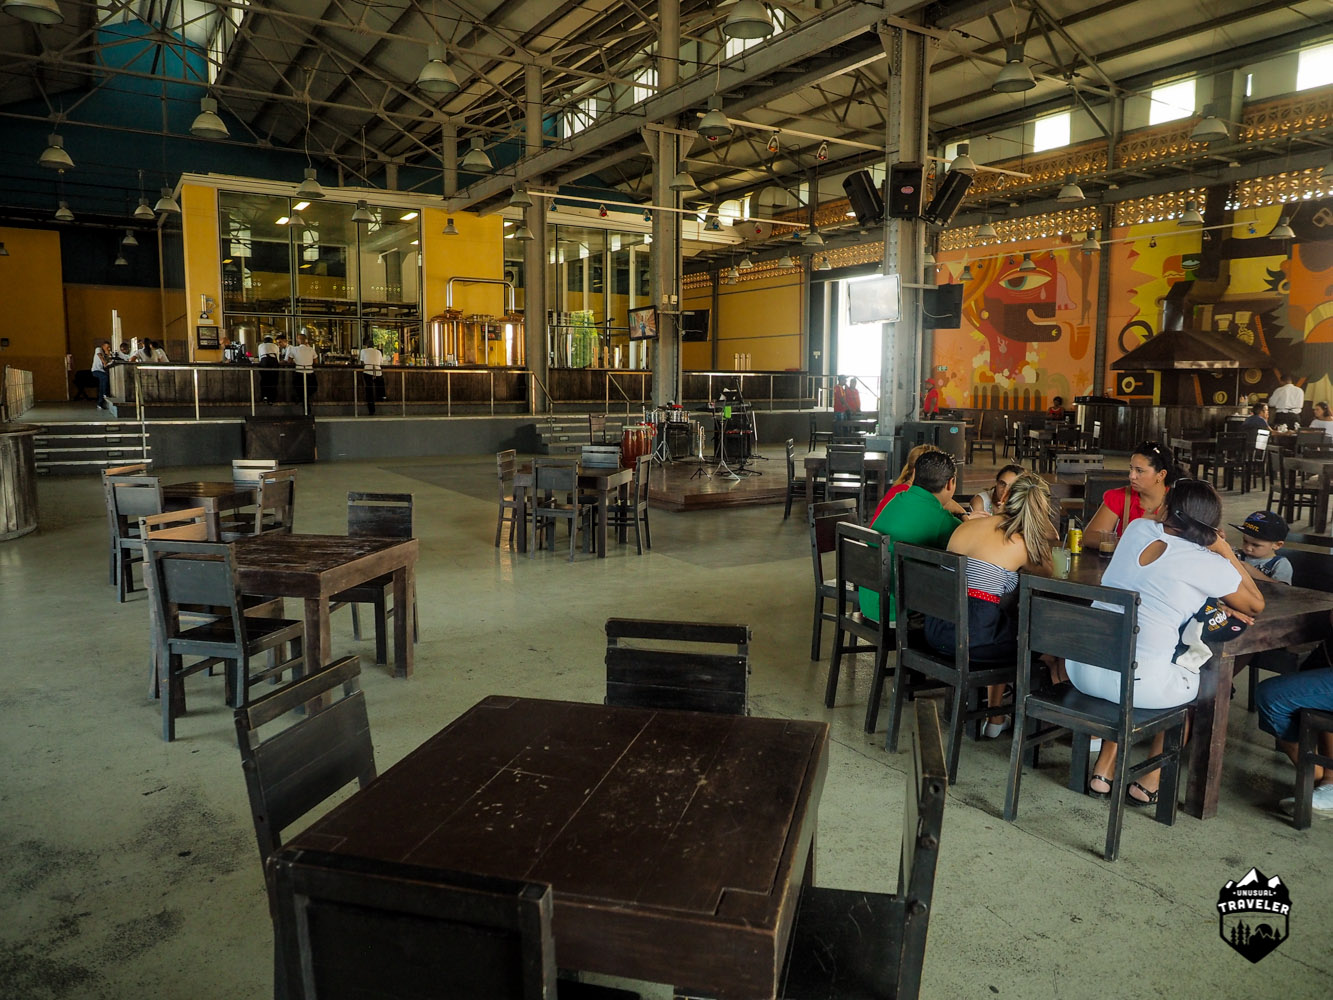 Inside Cerveceria Antiguo Almacen de la Madera y El Tabaco, alot of space. they put out more tabels and chairs when there´s need for it